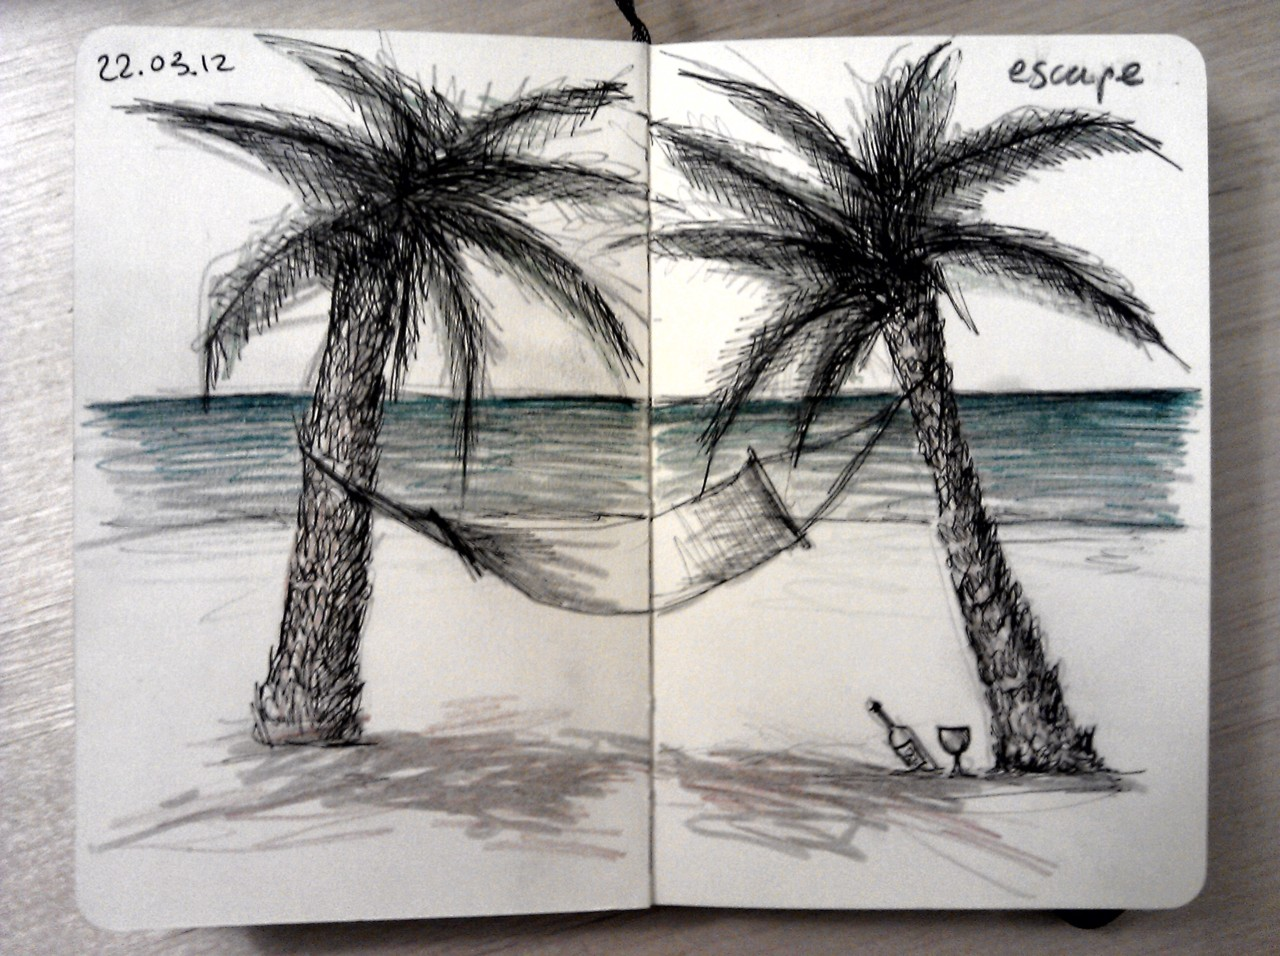 365 drawings later .. day 51 … escape (a recurring theme)